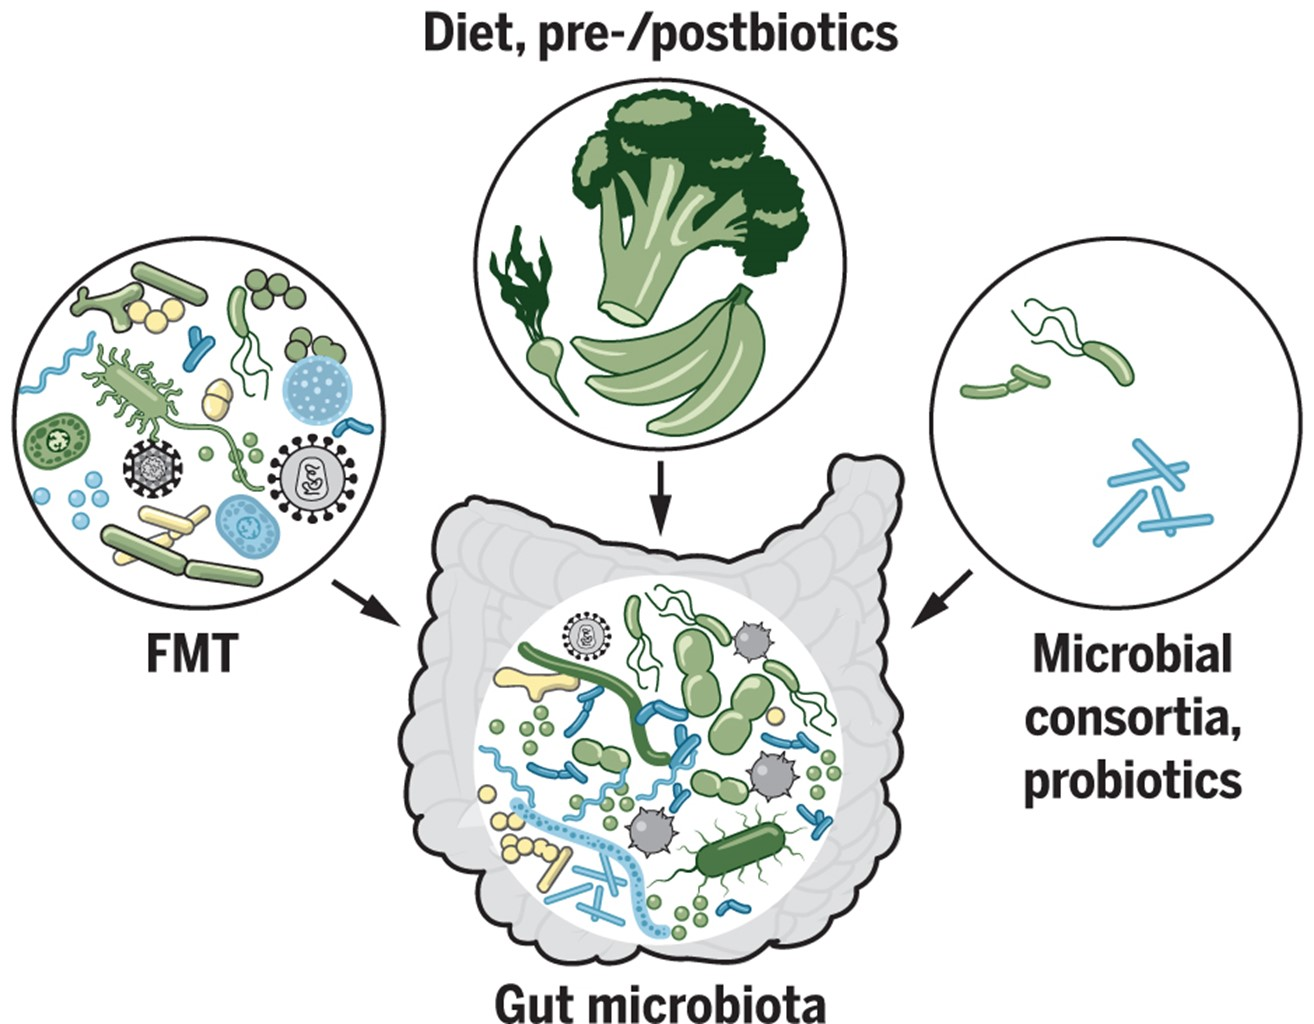 Come si fa a modificare il microbiota intestinale?